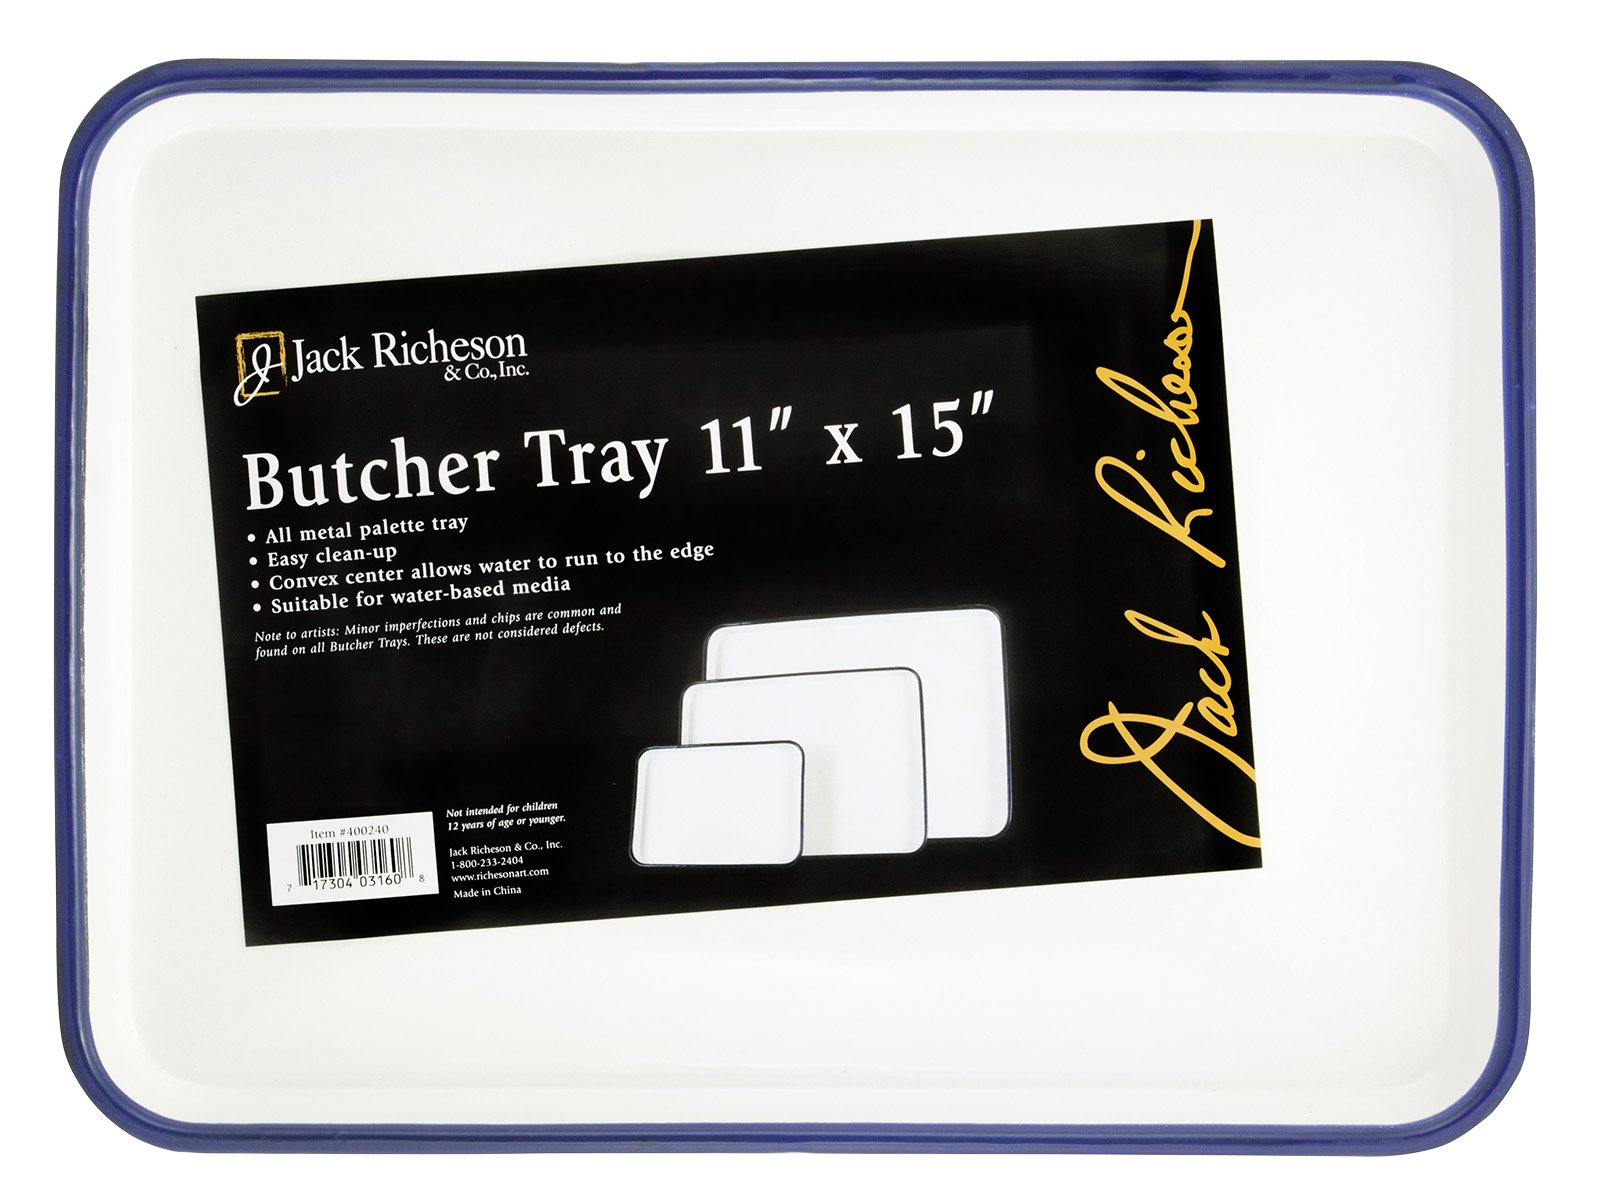 Jack Richeson Butcher Porcelain Palette Tray, 11 x 15 in, White